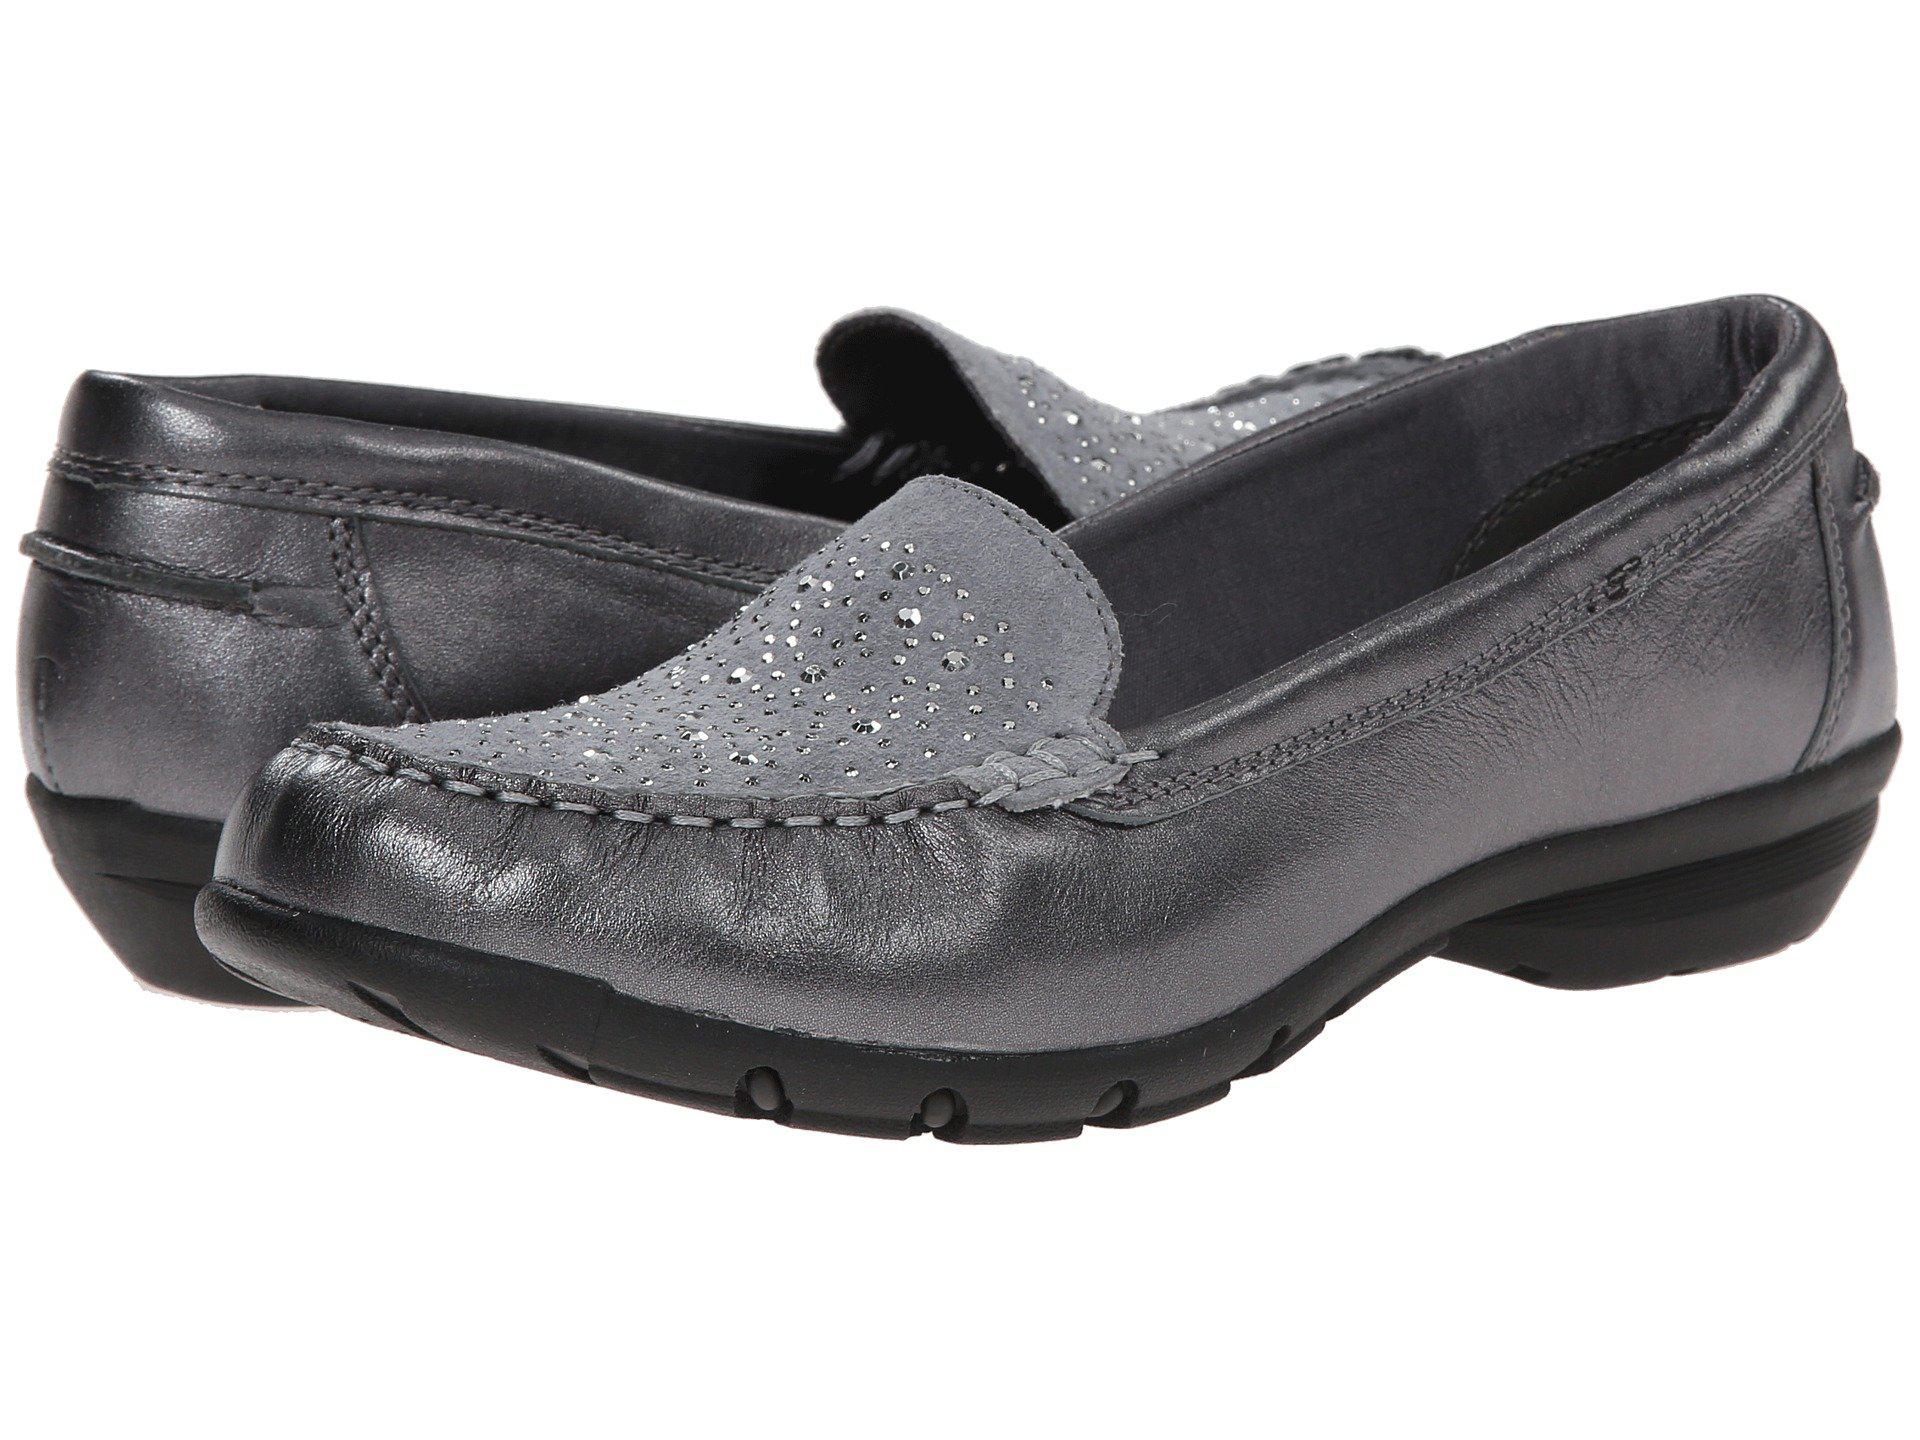 c6f743becd5 Lyst - Skechers Relaxed Fit - Career - Fabulous Advice in Gray